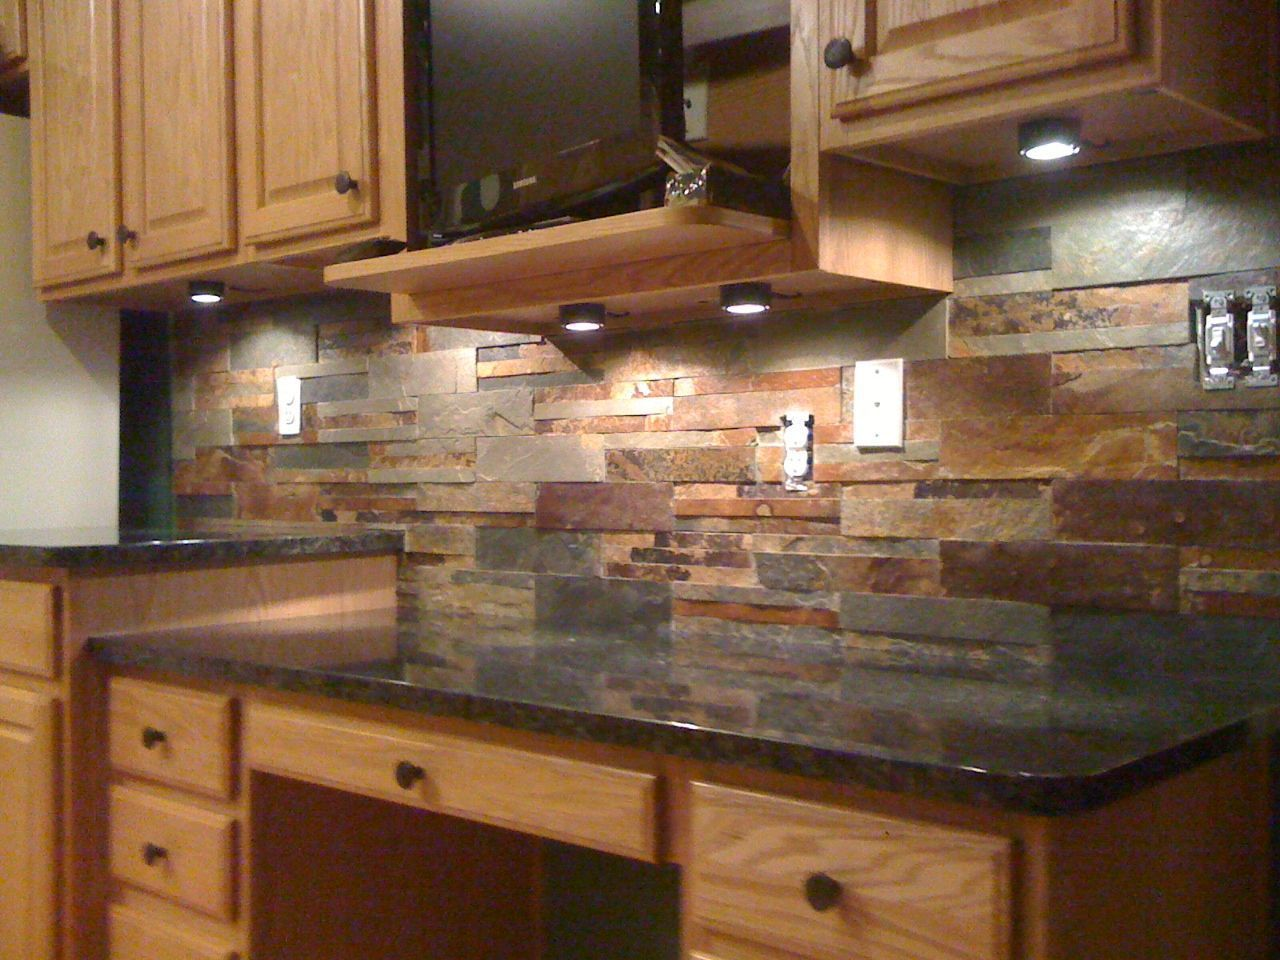 Tile Backsplash With Granite Countertops Kitchen Remodel: backsplash ideas quartz countertops